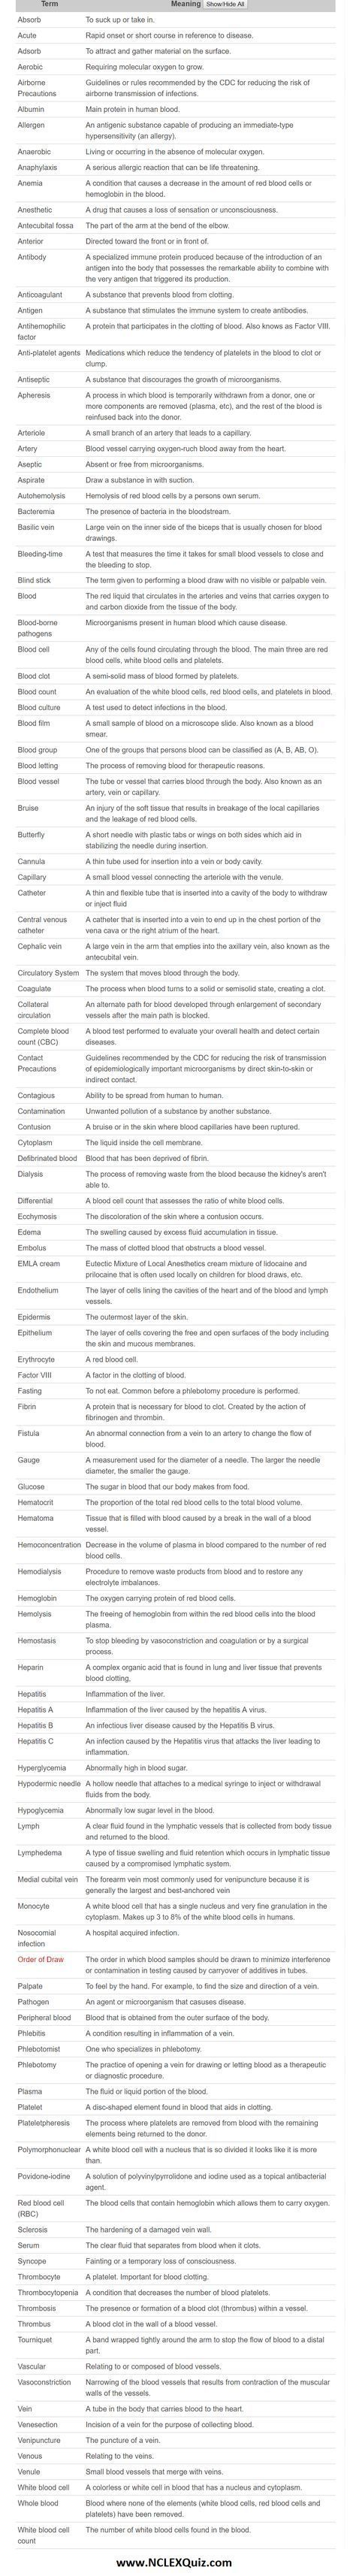 Best 25 certified pediatric nurse ideas on pinterest pediatric phlebotomy terminology cheat sheet xflitez Image collections